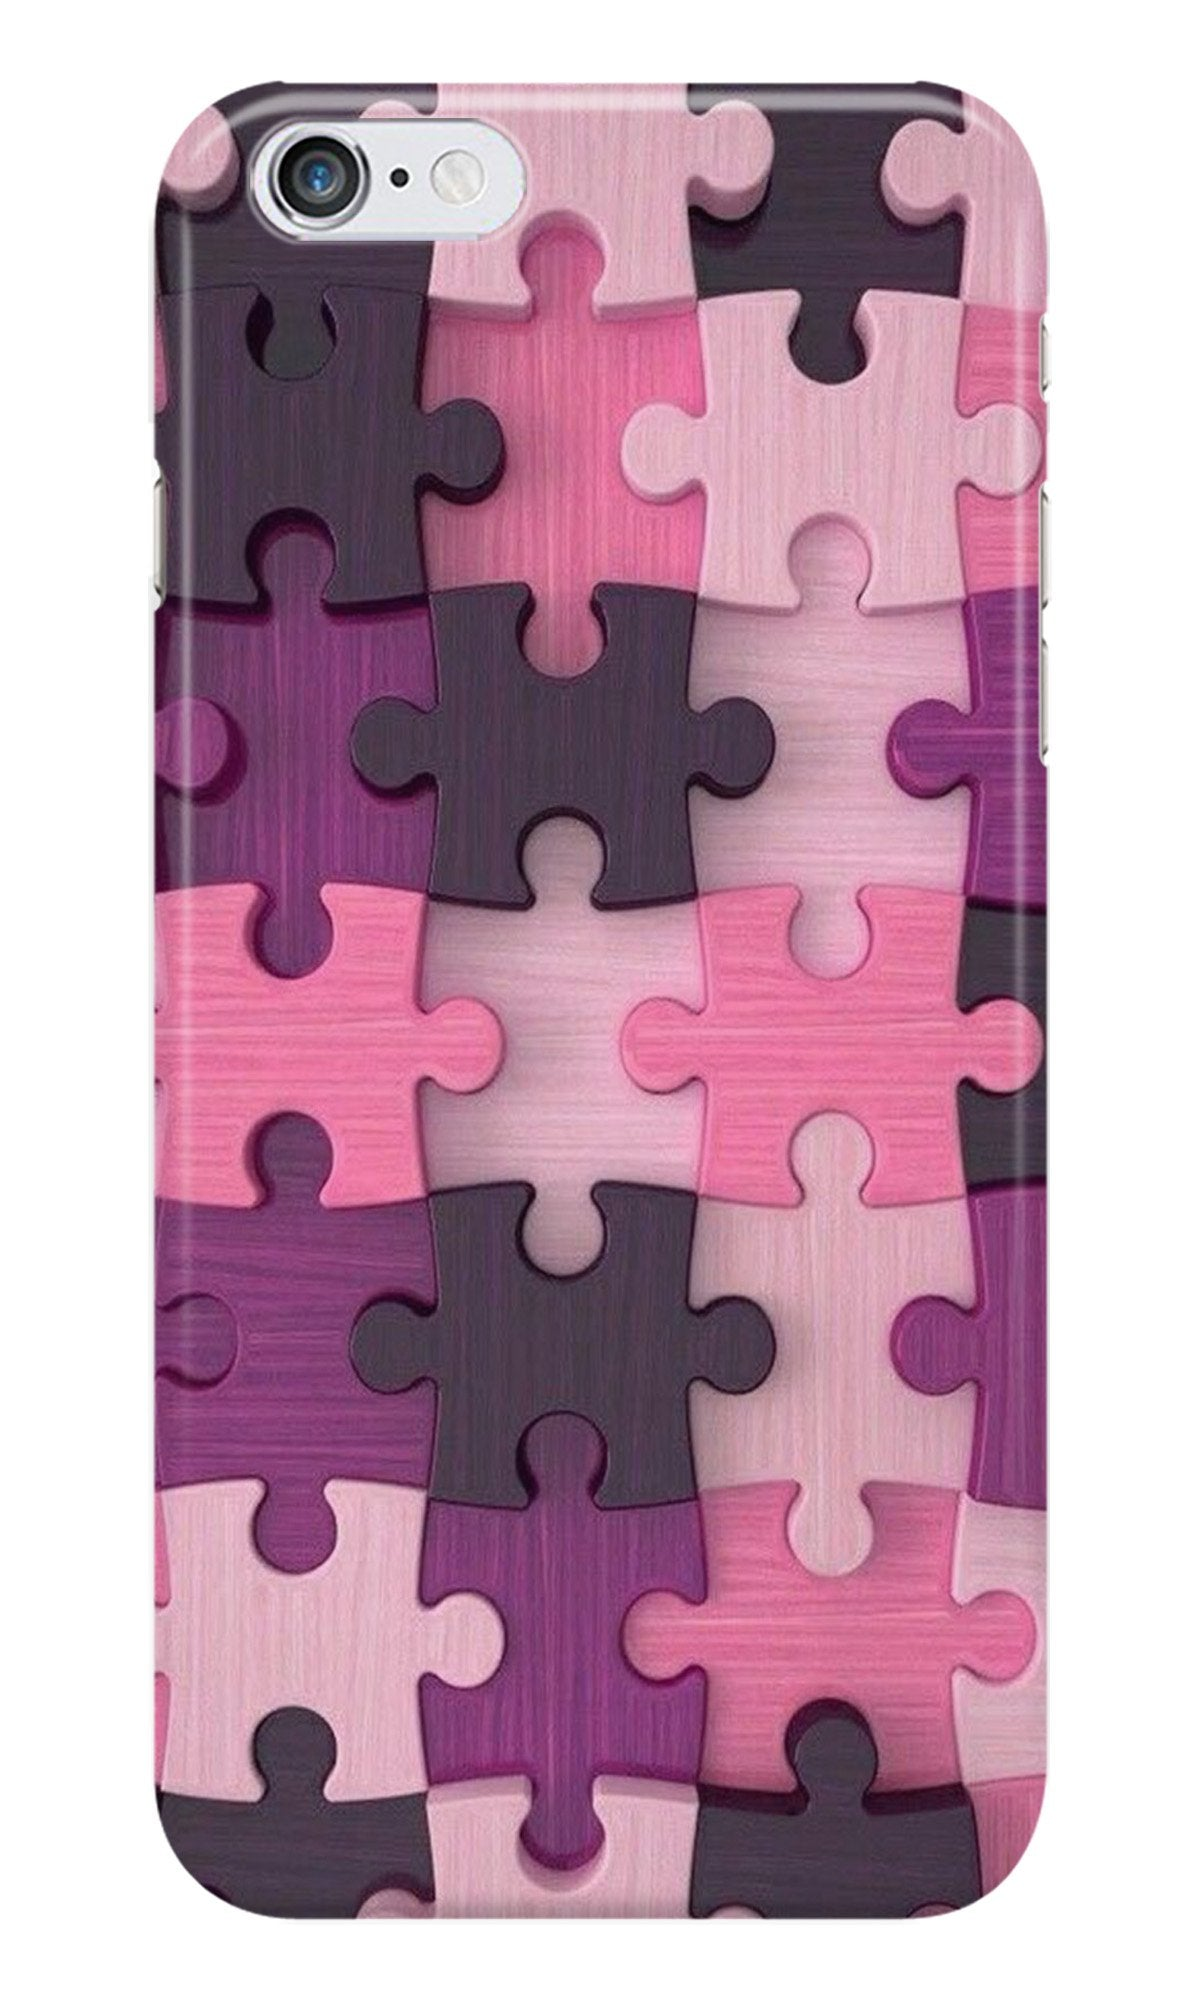 Puzzle Case for iPhone 6/ 6s (Design - 199)